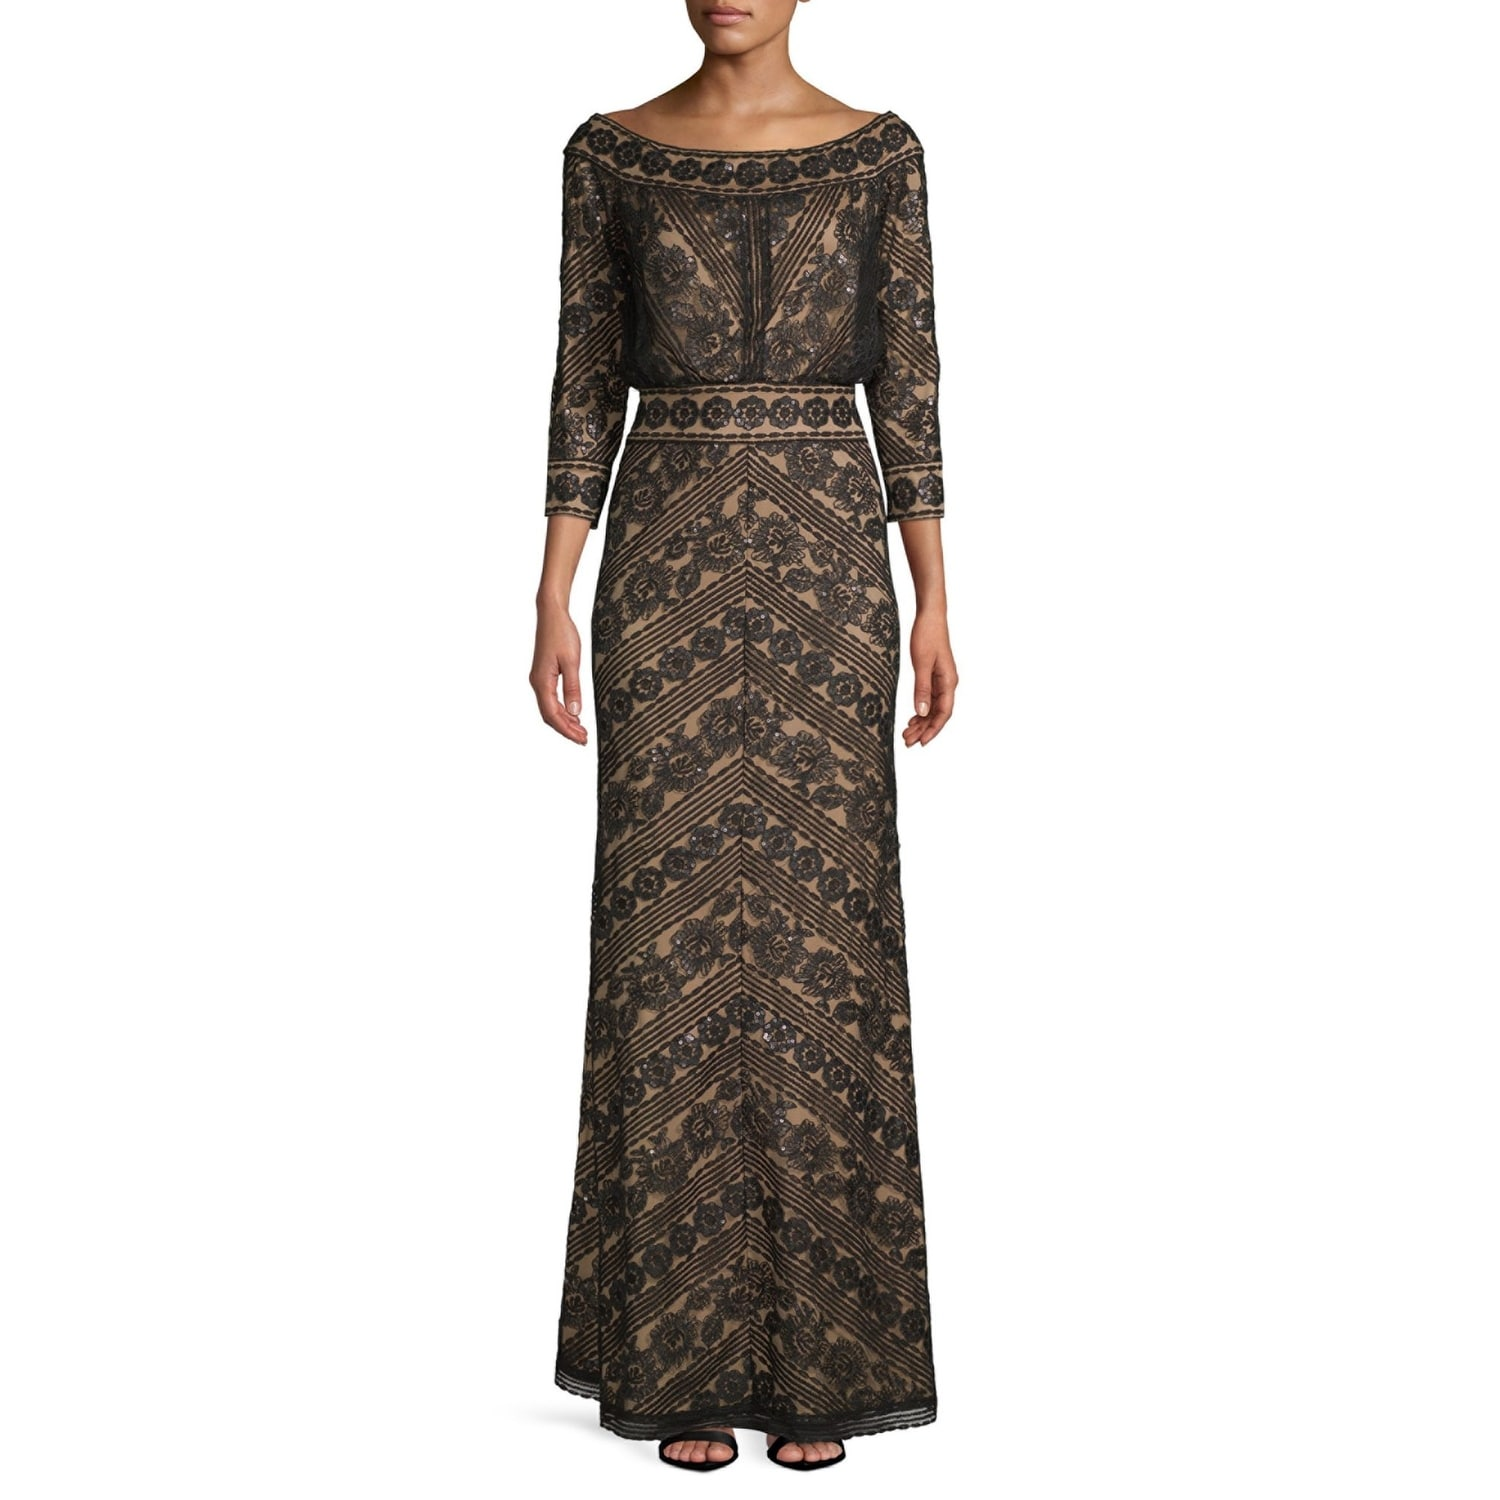 77e88aa8d700 Tadashi Shoji Women's Clothing | Shop our Best Clothing & Shoes Deals  Online at Overstock